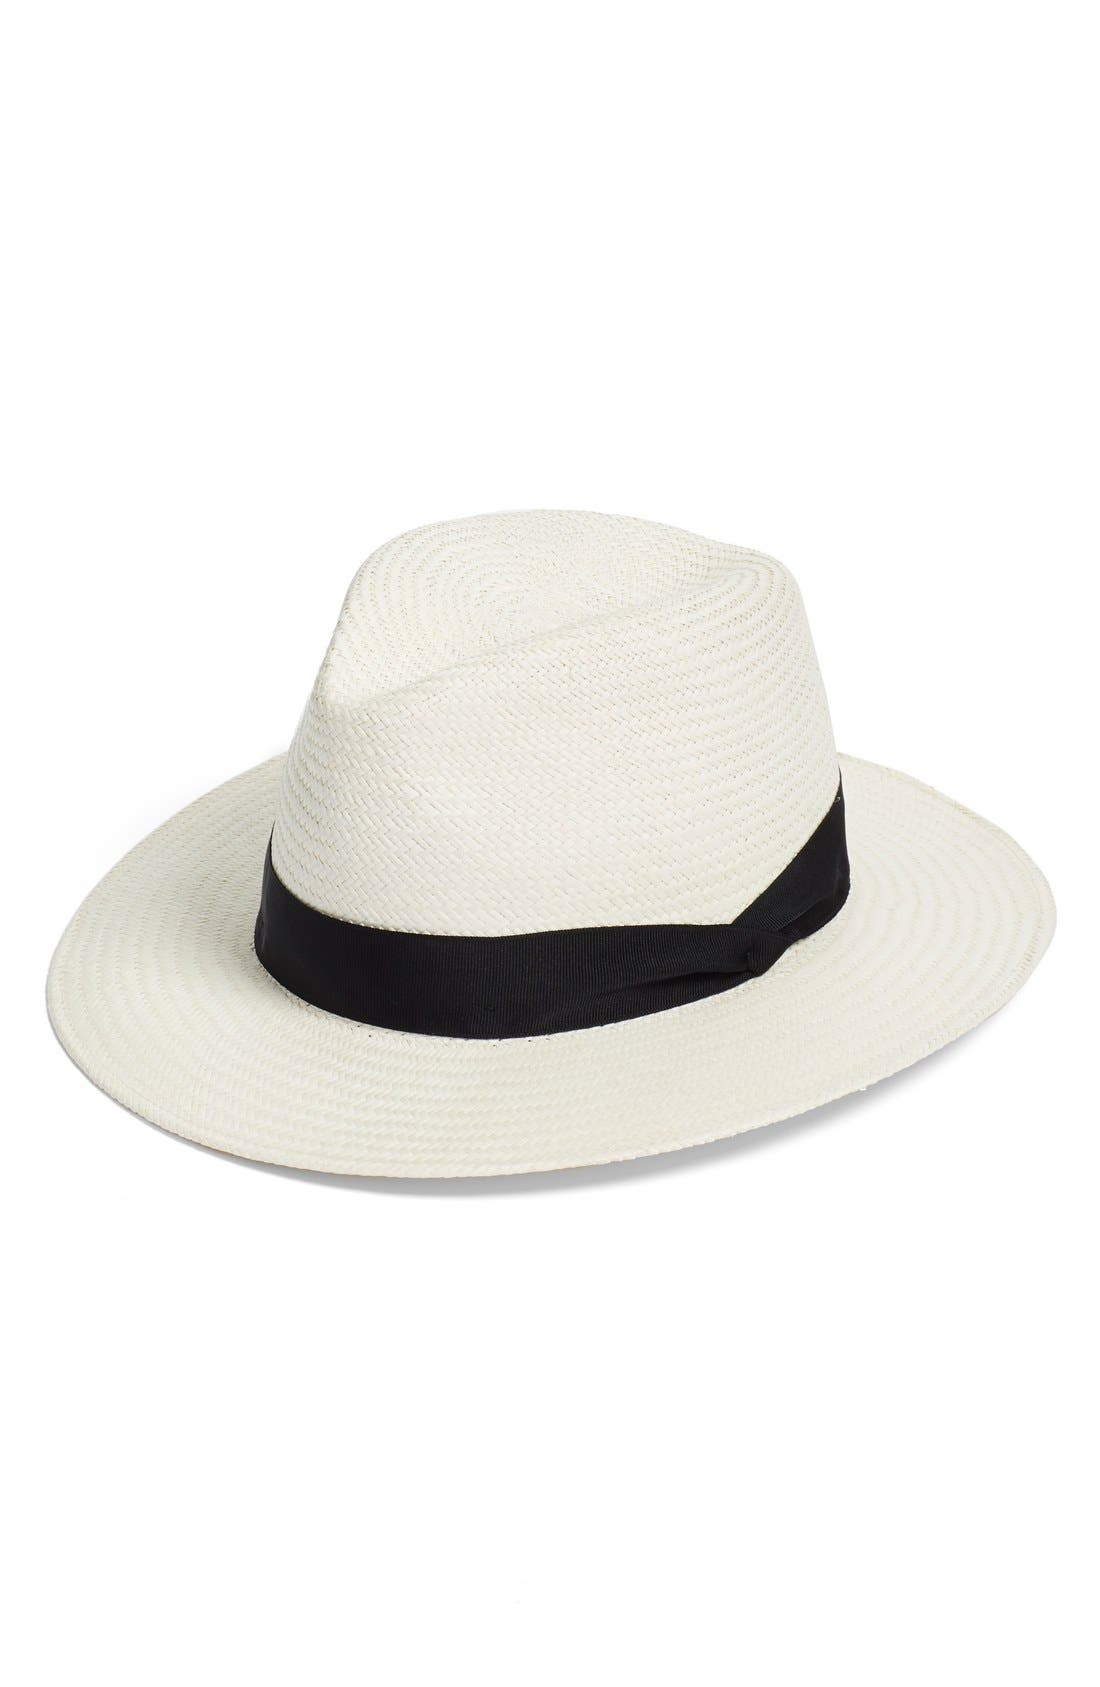 Straw Panama Hat,                             Main thumbnail 1, color,                             WHITE